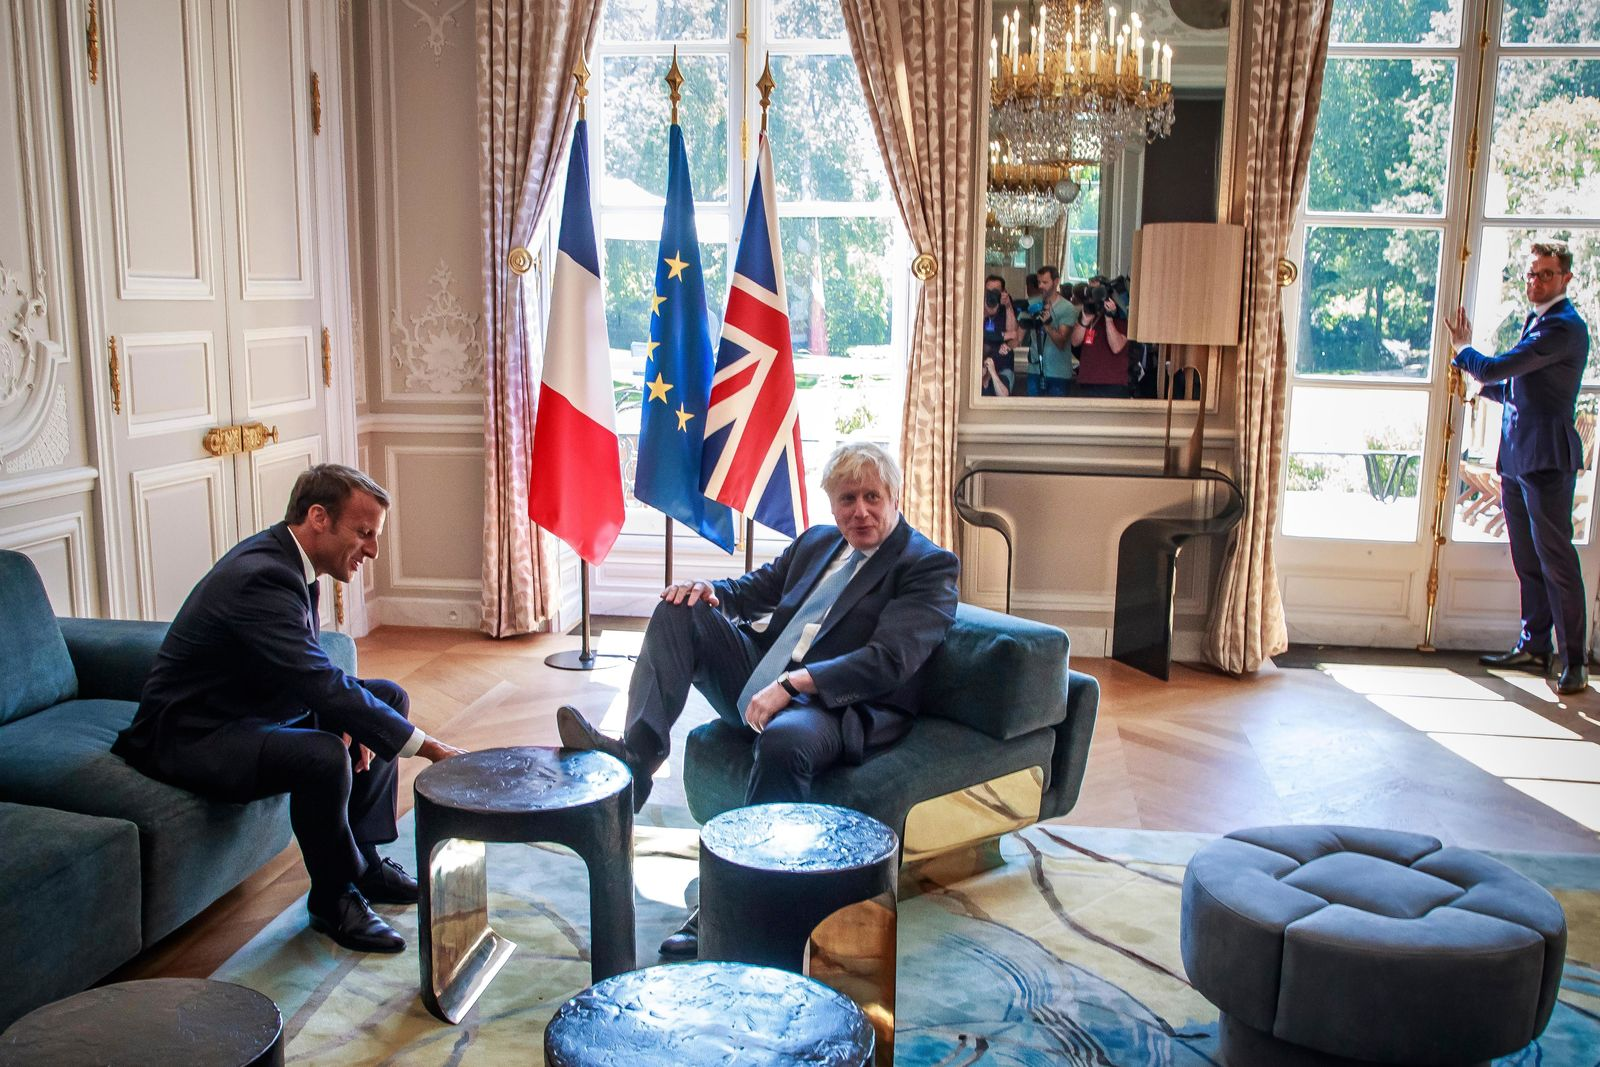 French President Emmanuel Macron, left, talks to Britain's Prime Minister Boris Johnson during their meeting at the Elysee Palace, Thursday, Aug. 22, 2019 in Paris.{ } (Christophe Petit Tesson, Pool via AP)